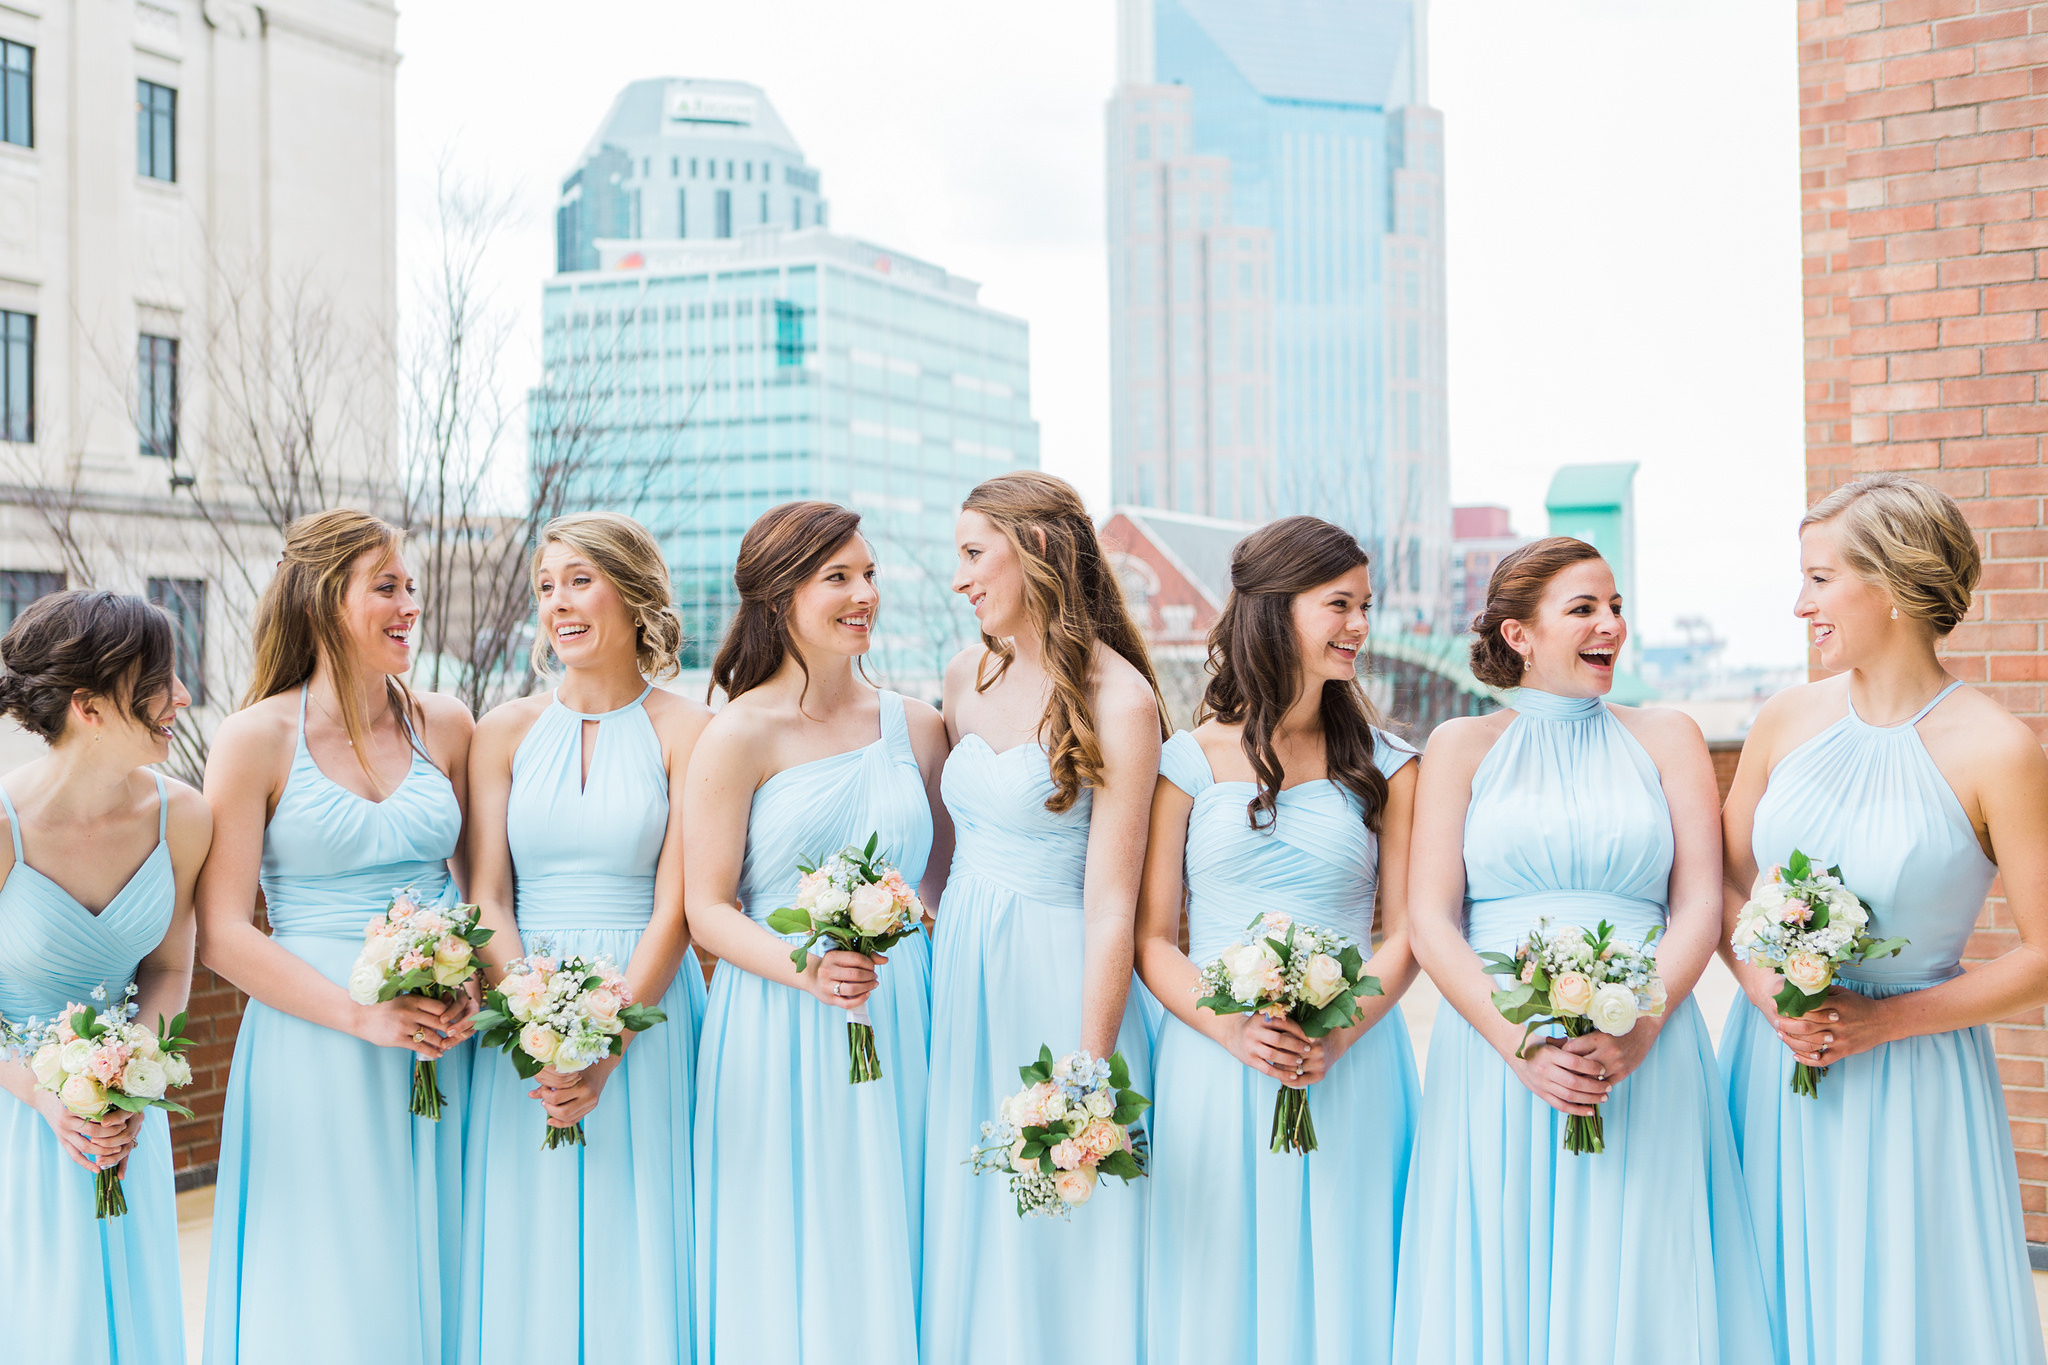 Mix and match colors bridesmaid dresses